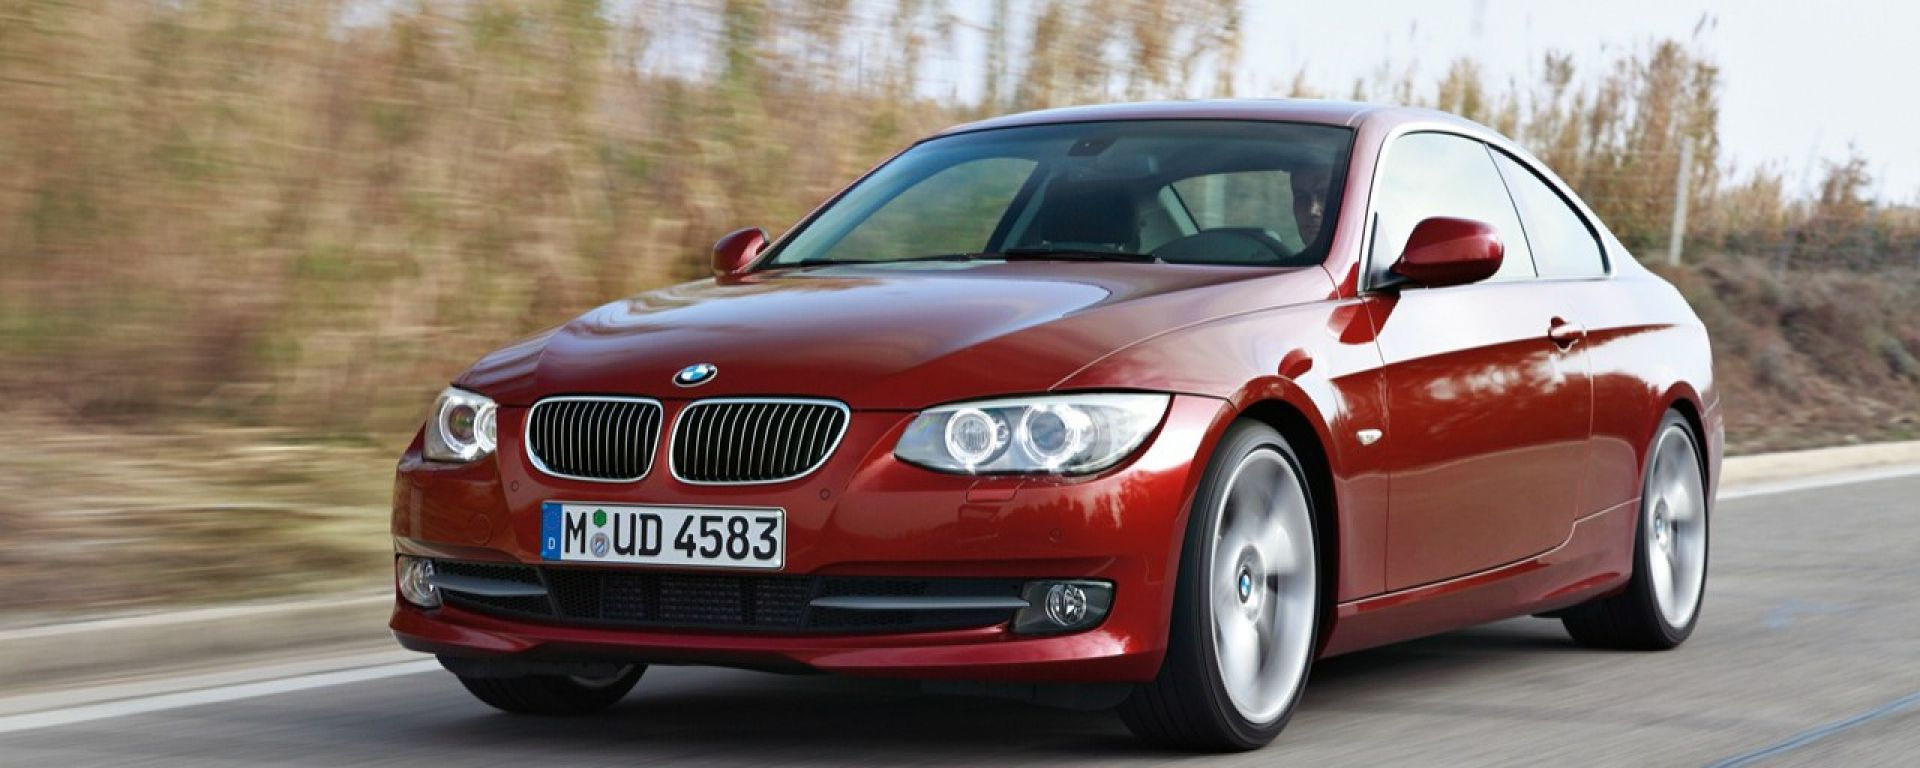 BMW 335i Convertible 2011